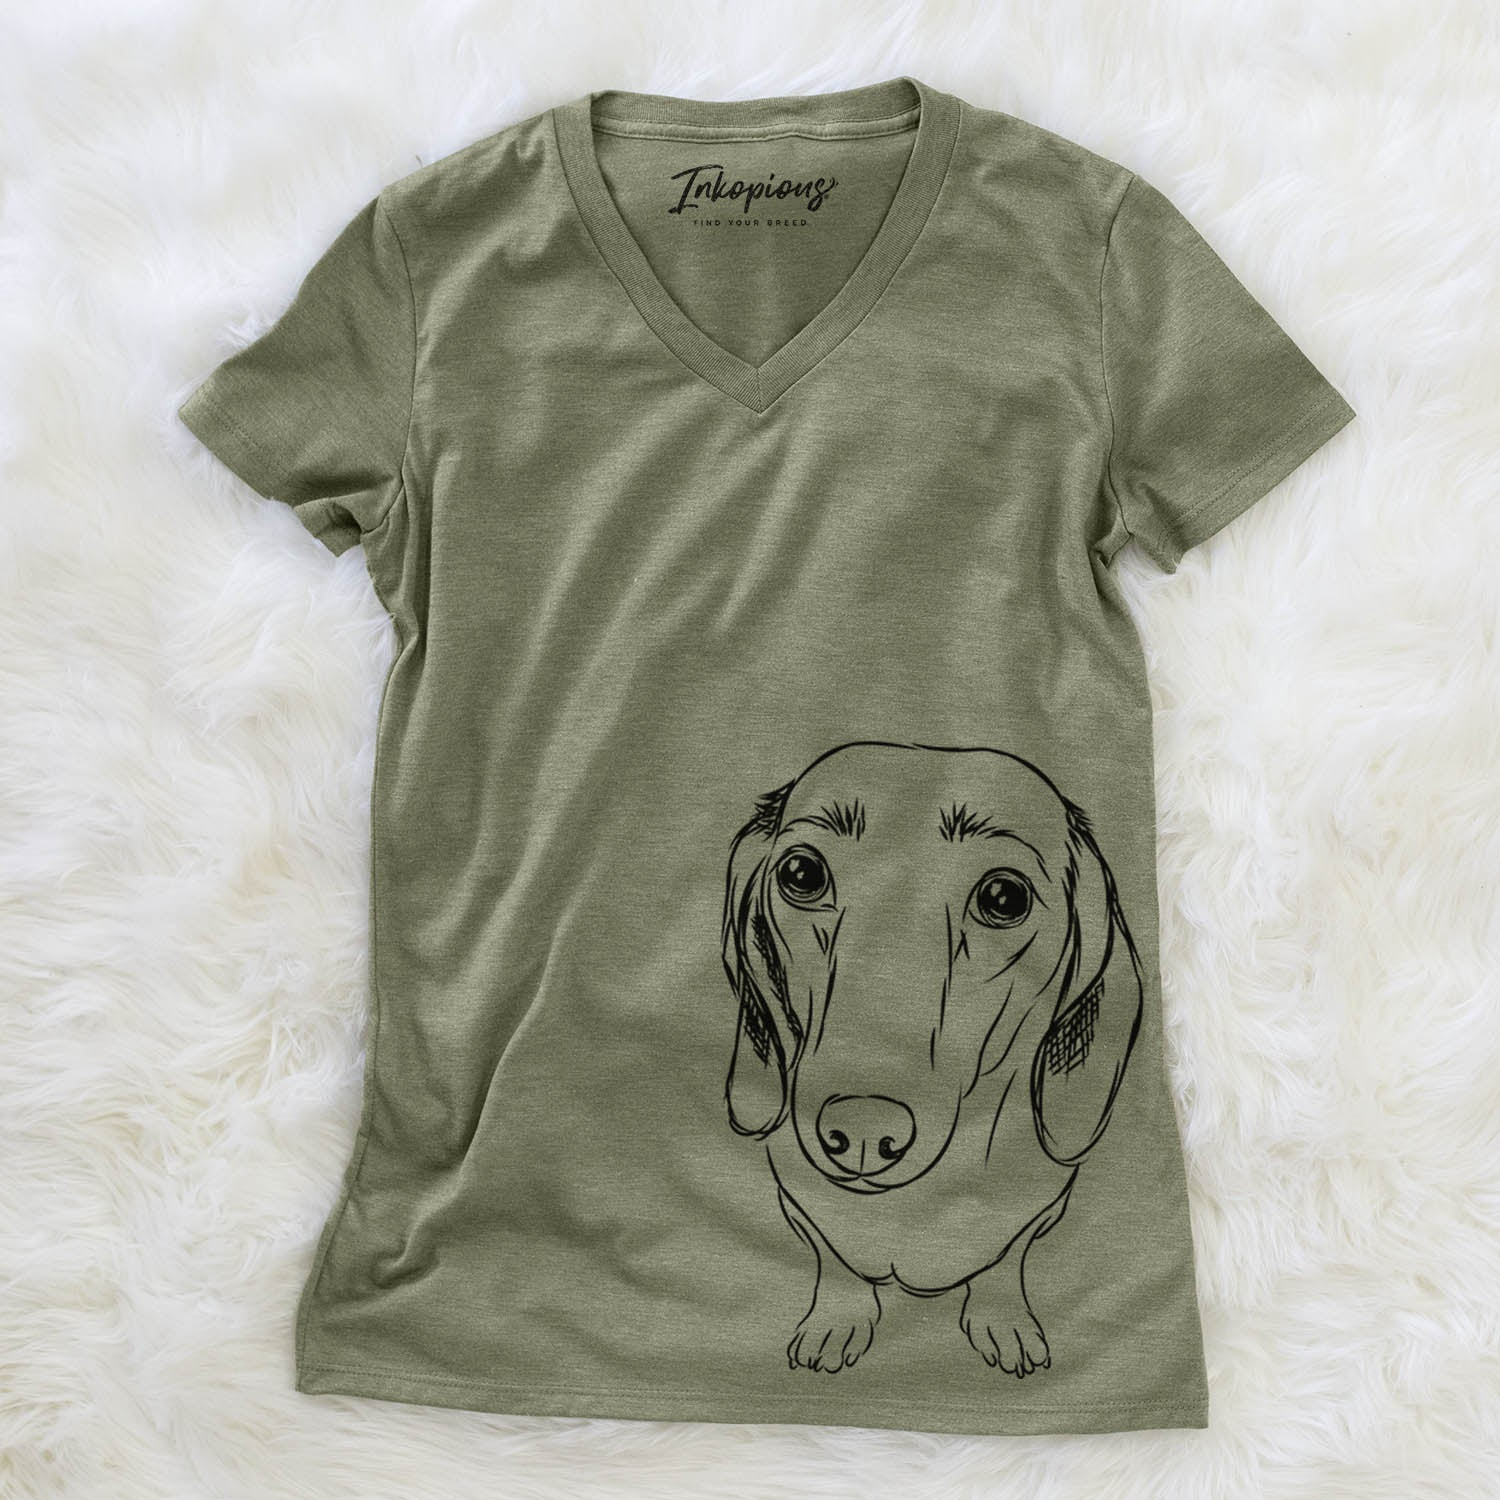 Annabelle the Dachshund - Women's Modern Fit V-neck Shirt